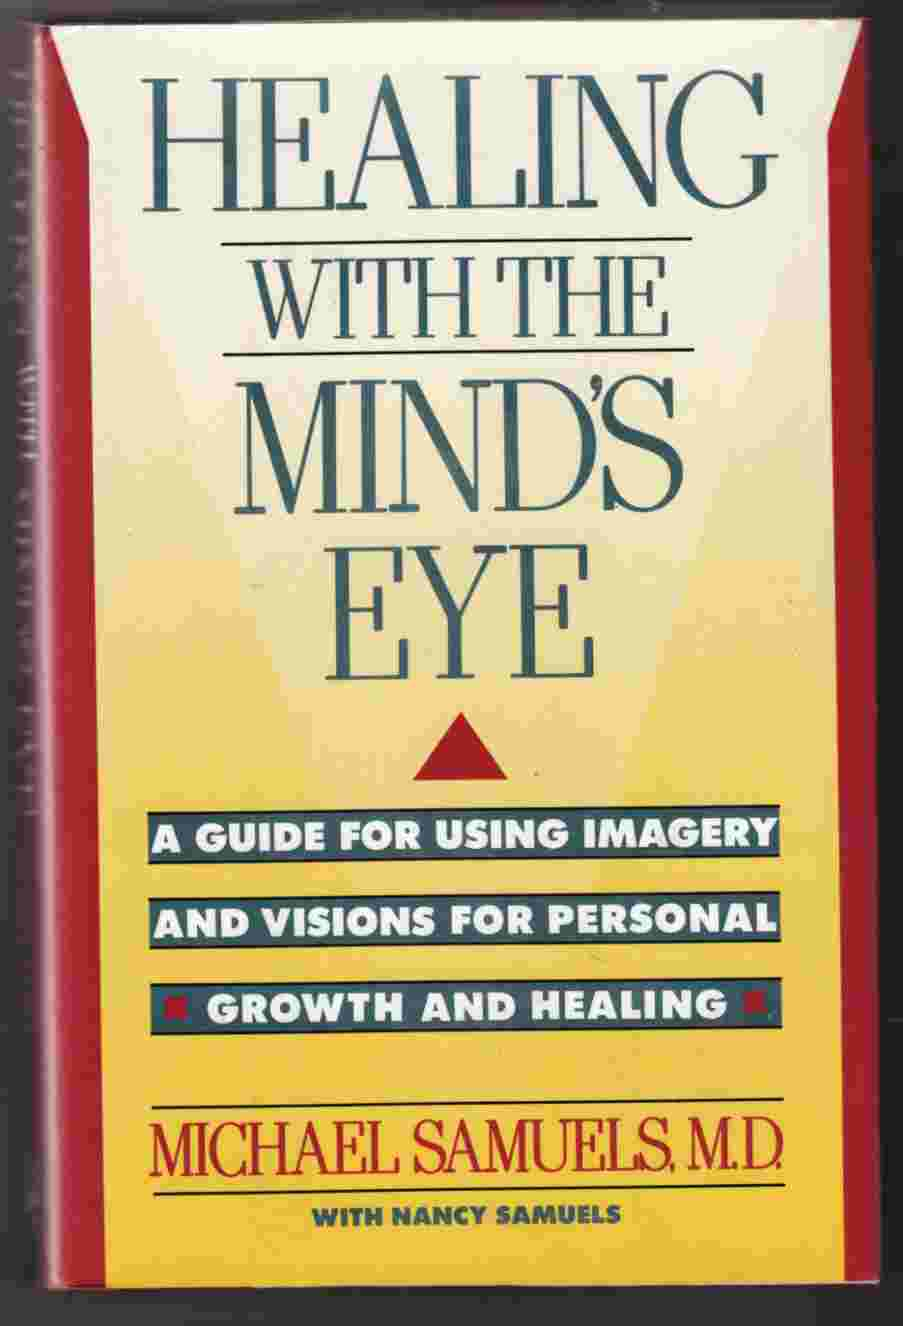 Image for Healing with the Mond's Eye A Guide for Using Imagery and Visions for Personal Growth and Healing